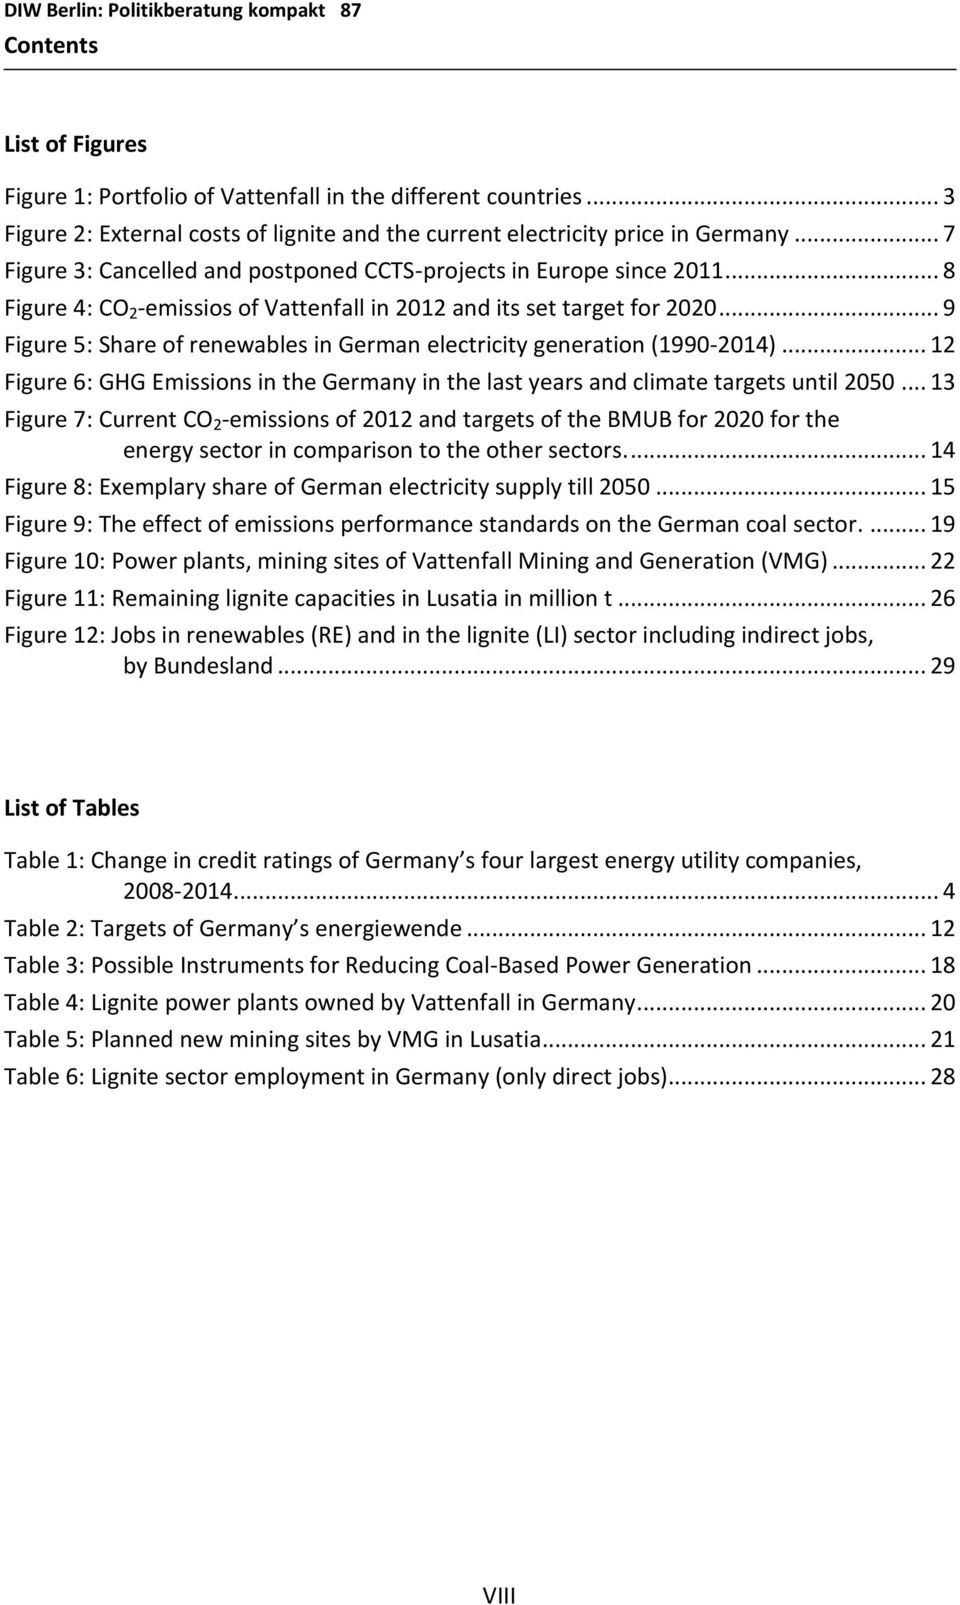 .. 9 Figure 5: Share of renewables in German electricity generation (1990-2014)... 12 Figure 6: GHG Emissions in the Germany in the last years and climate targets until 2050.